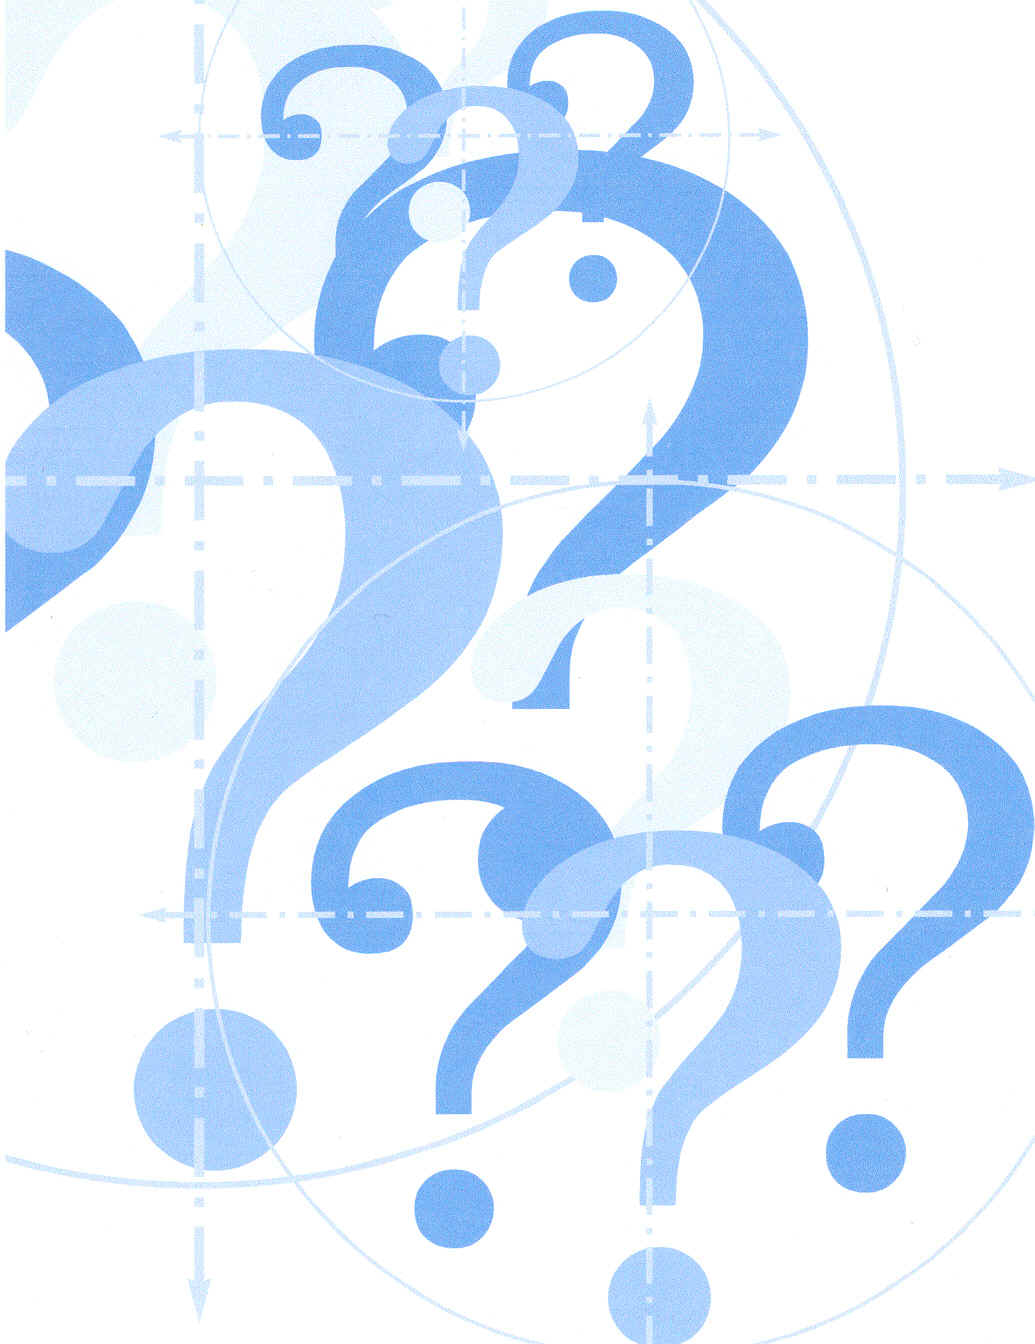 http://img.majidonline.com/pic/180441/question_marks.jpg